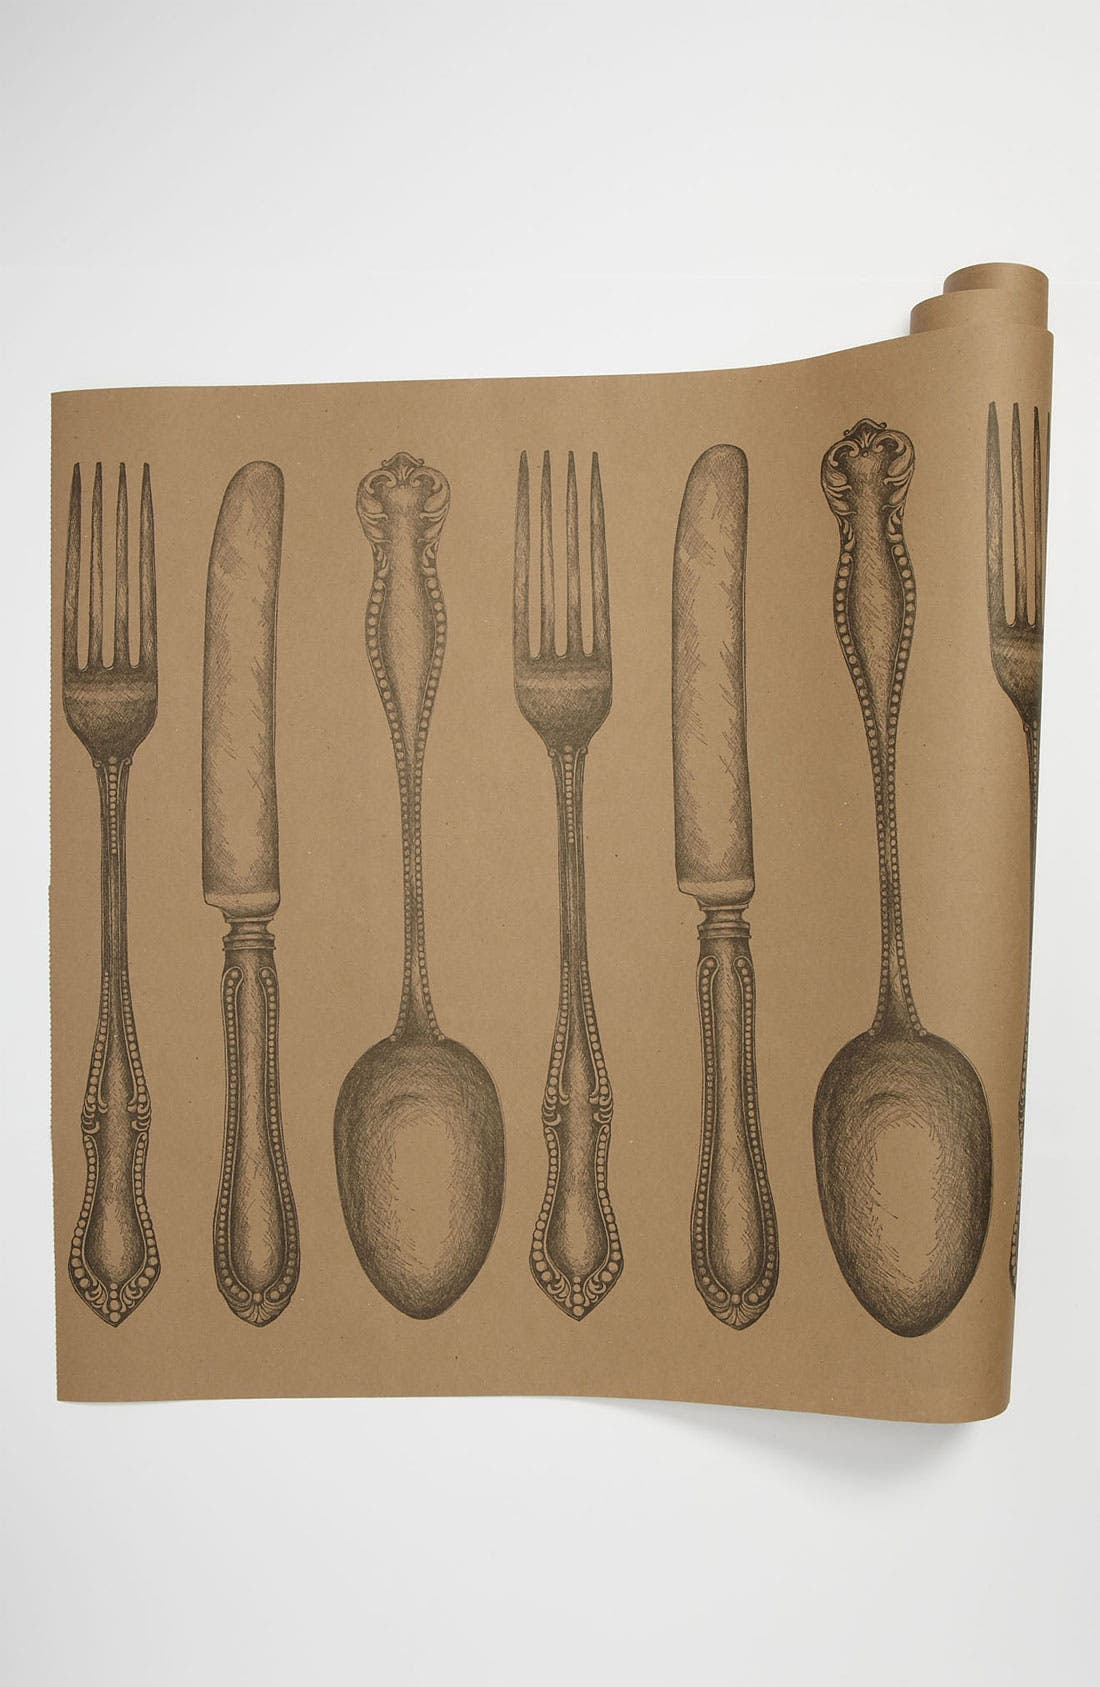 Alternate Image 1 Selected - Kitchen Papers by Cake 'Cutlery' Paper Table Runner